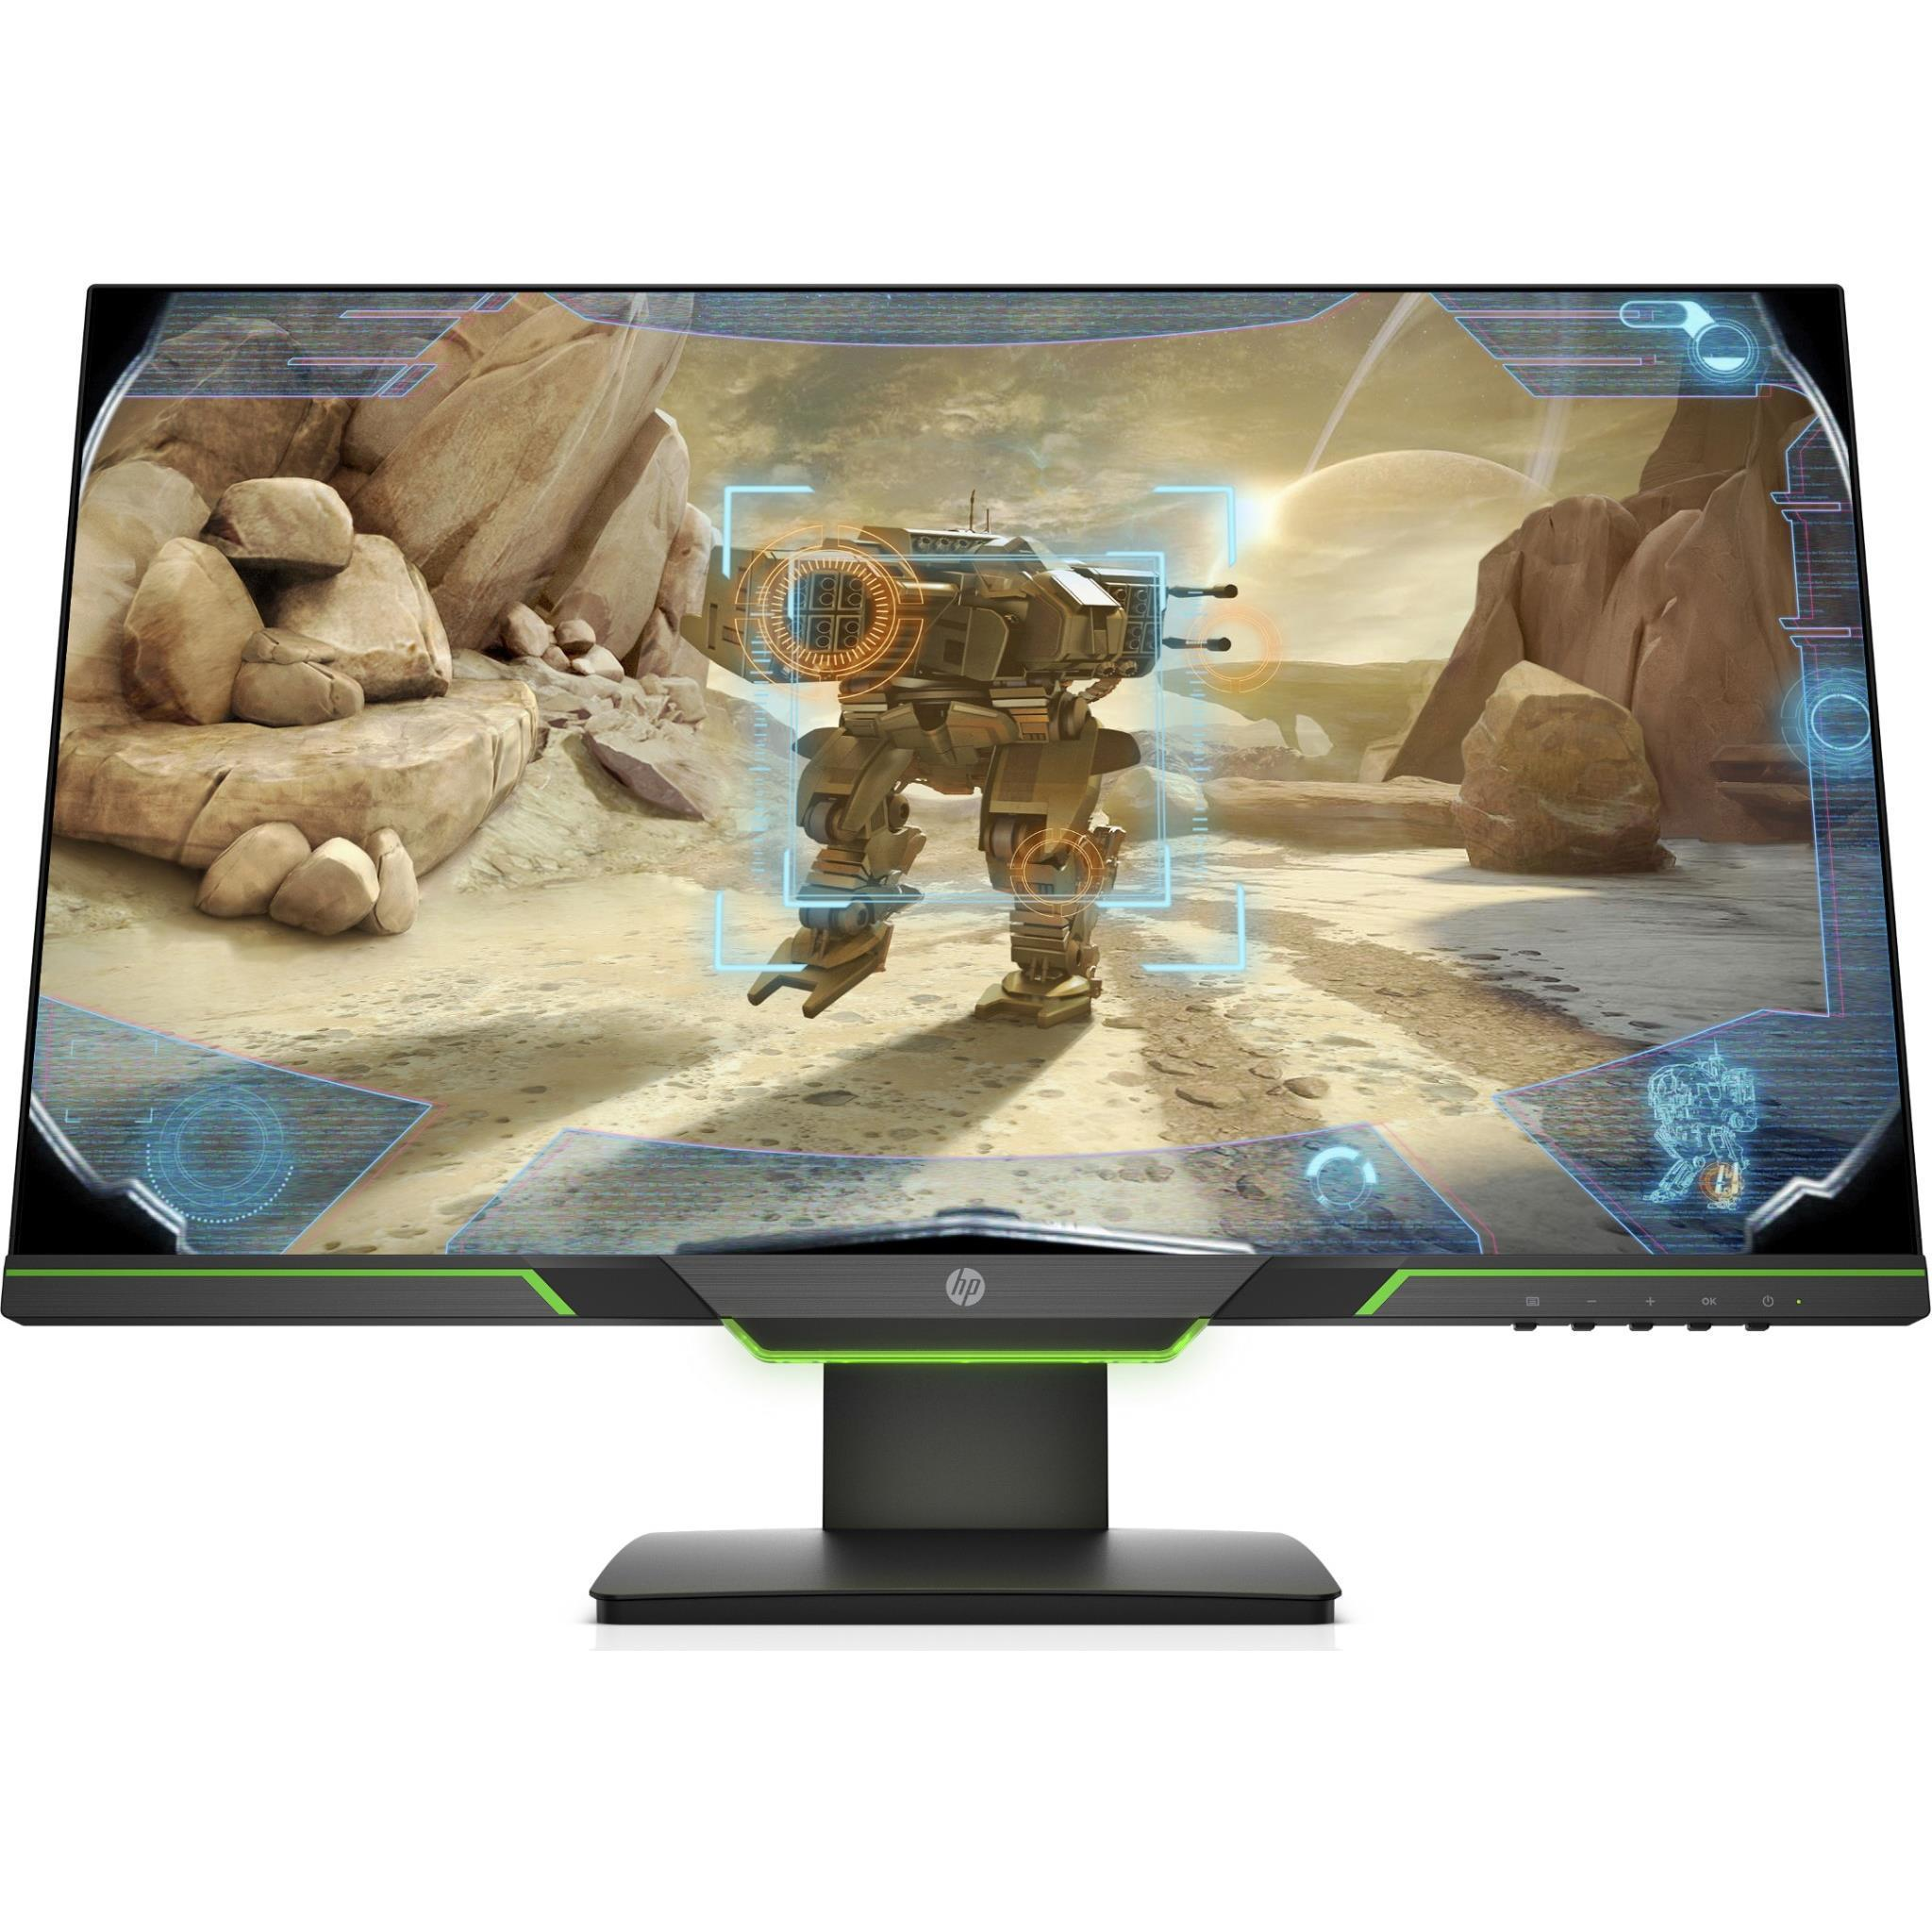 HP 25x 24.5″ Full HD 144Hz TN Gaming Monitor with Free-Sync